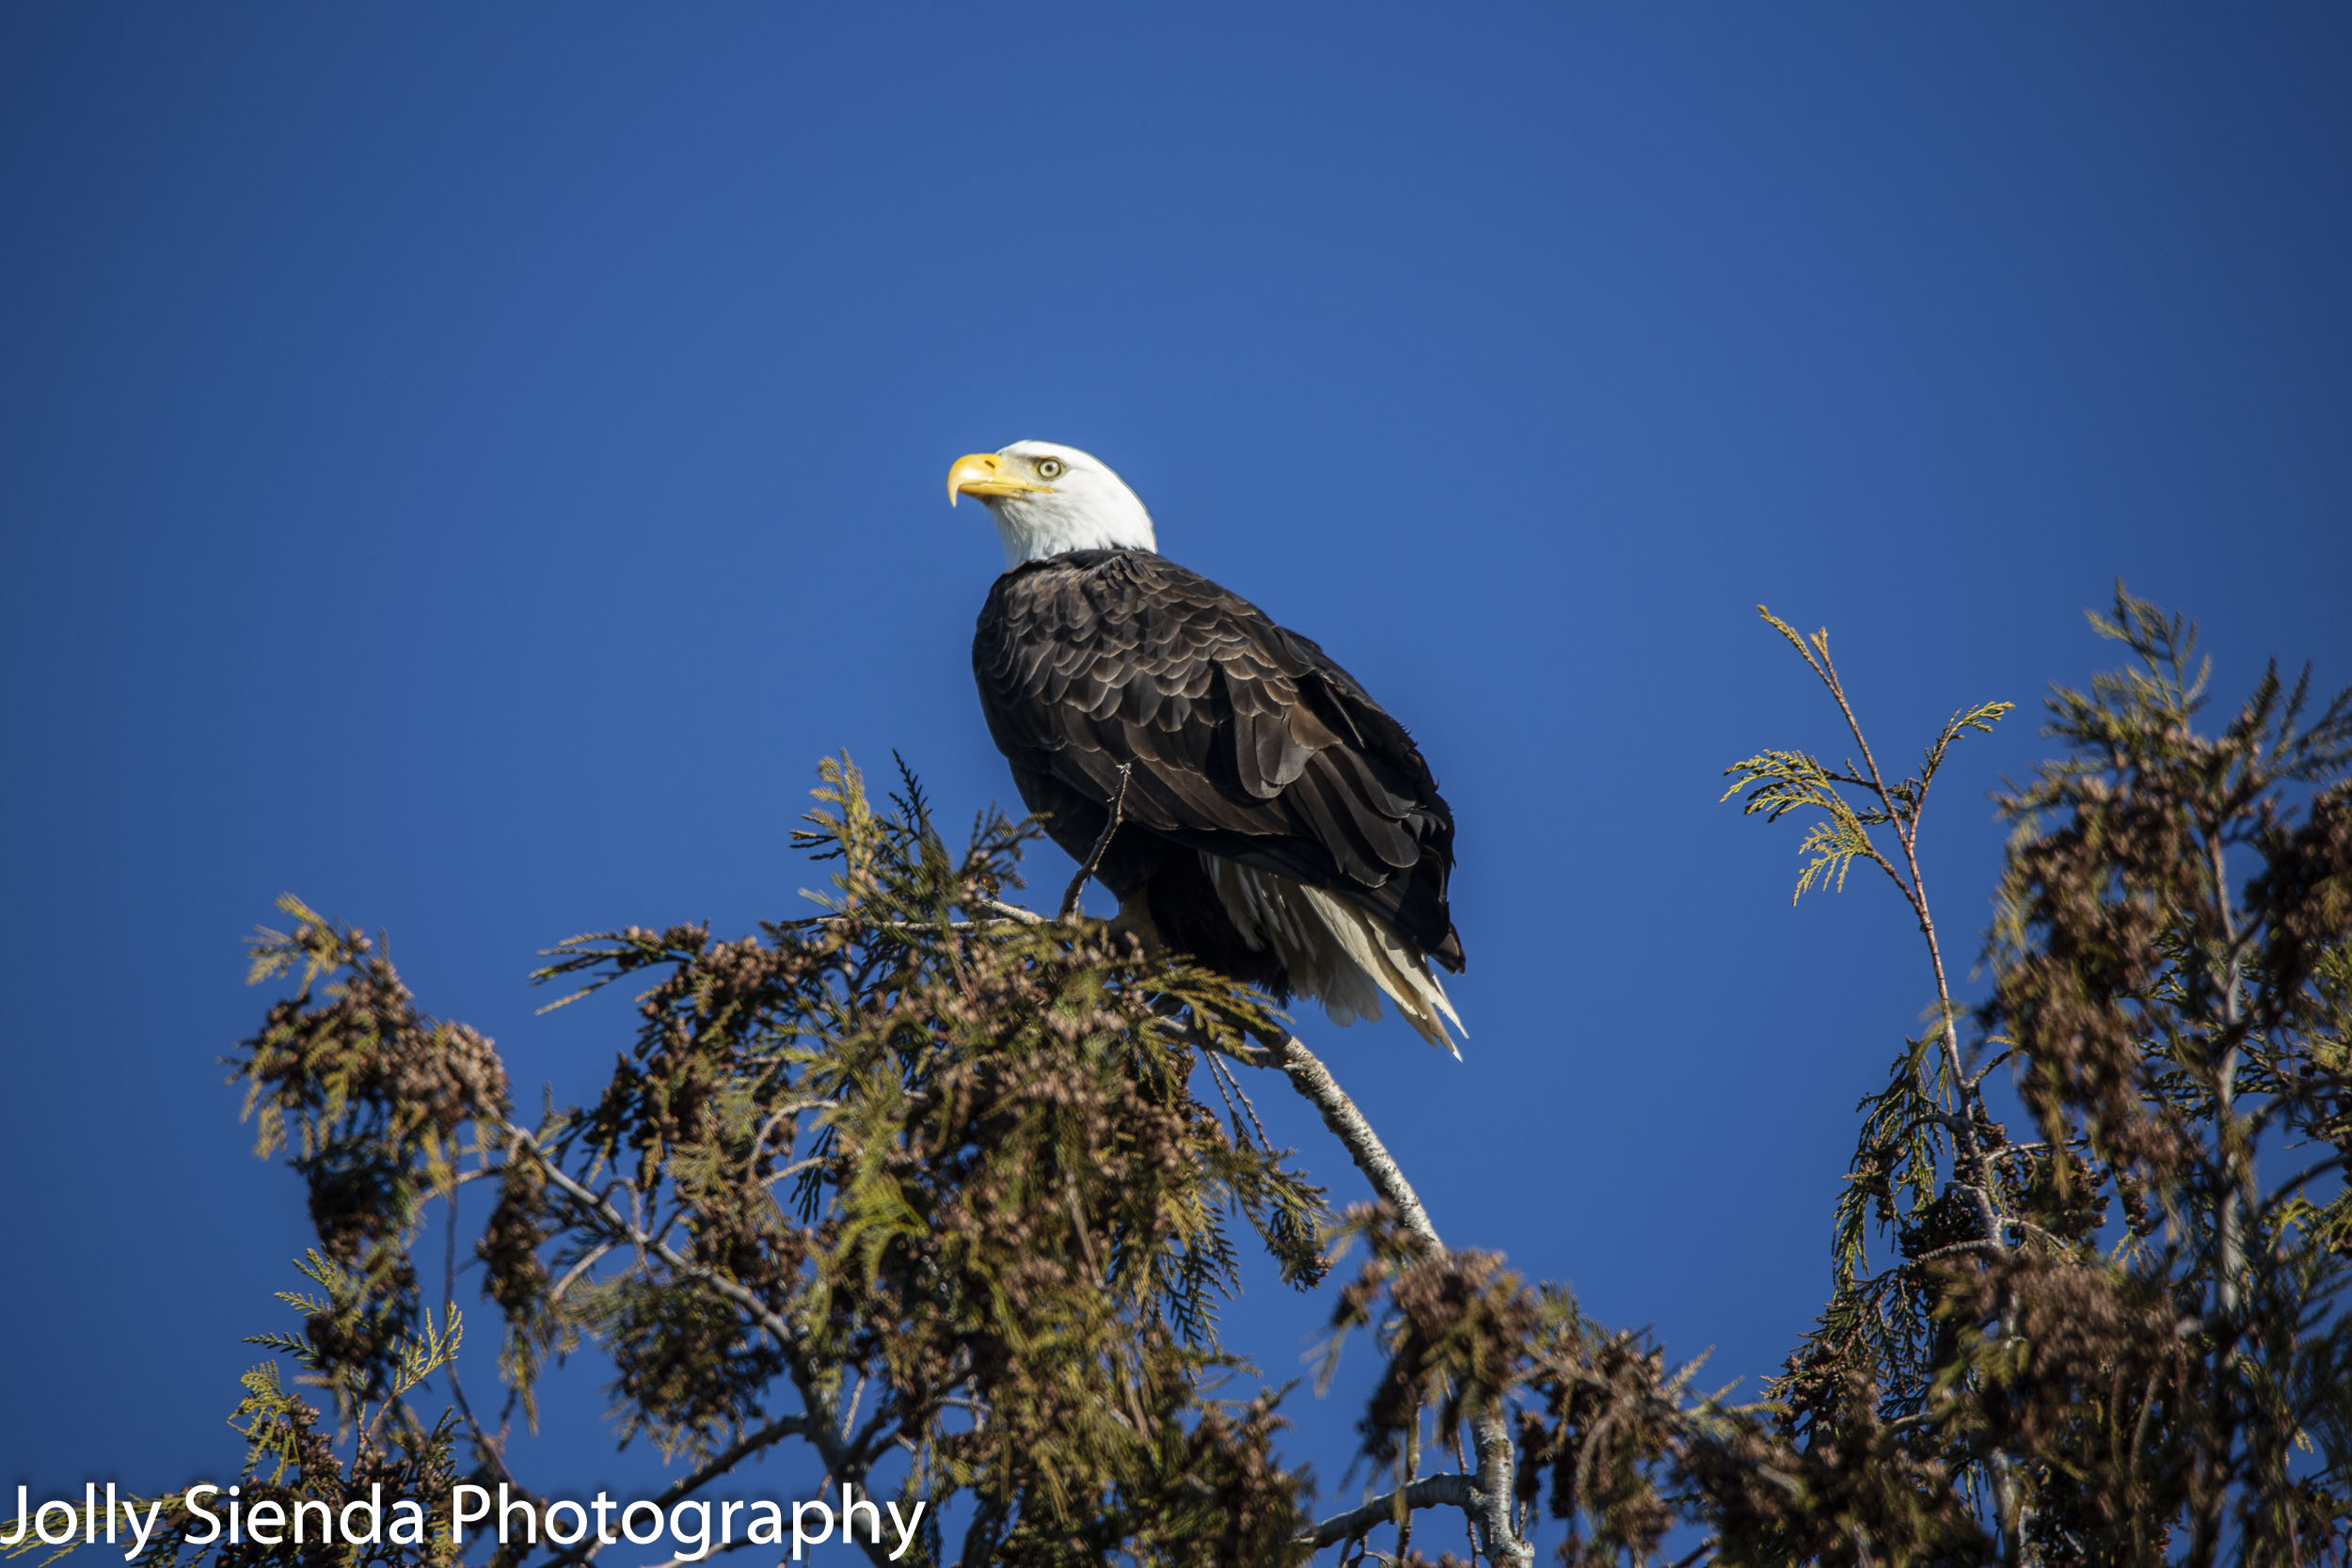 Bald Eagle perched on a Cedar tree